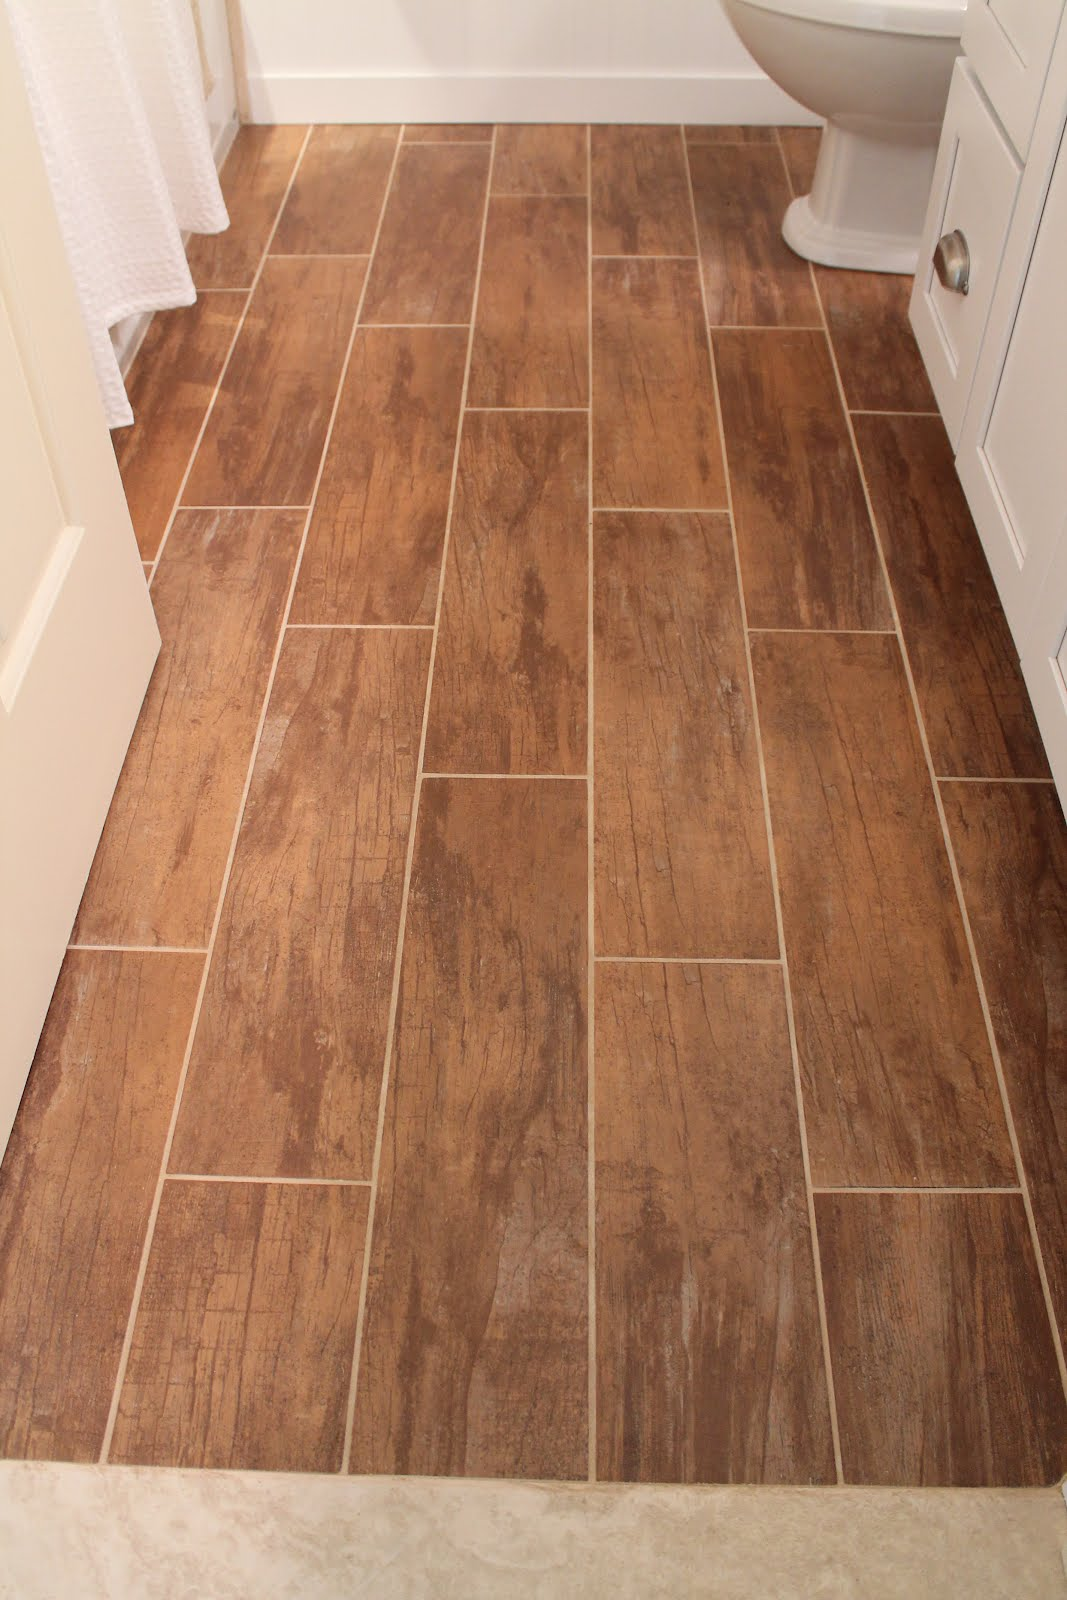 Bathroom Renovation with Wood Grain Tile and More ...